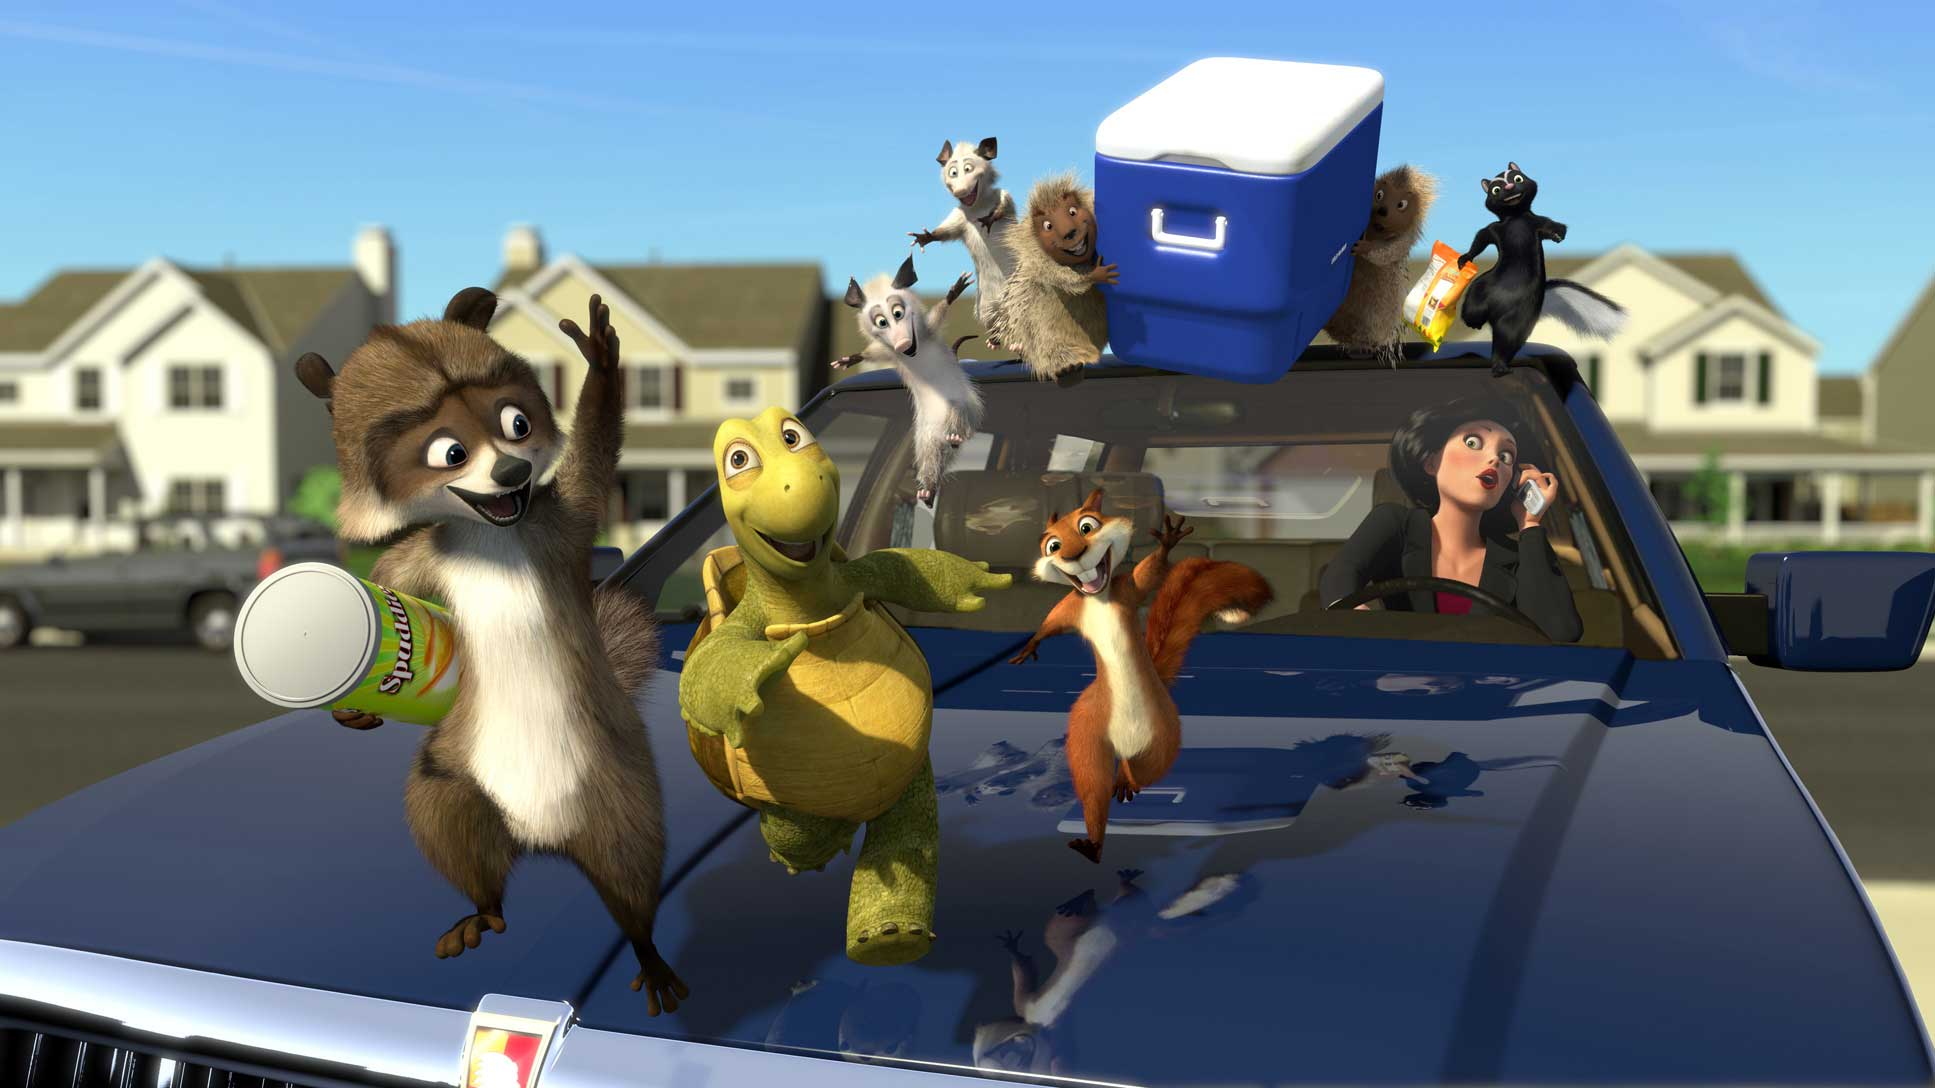 The animals conduct a raid on the housing estate in Over the Hedge (2006)